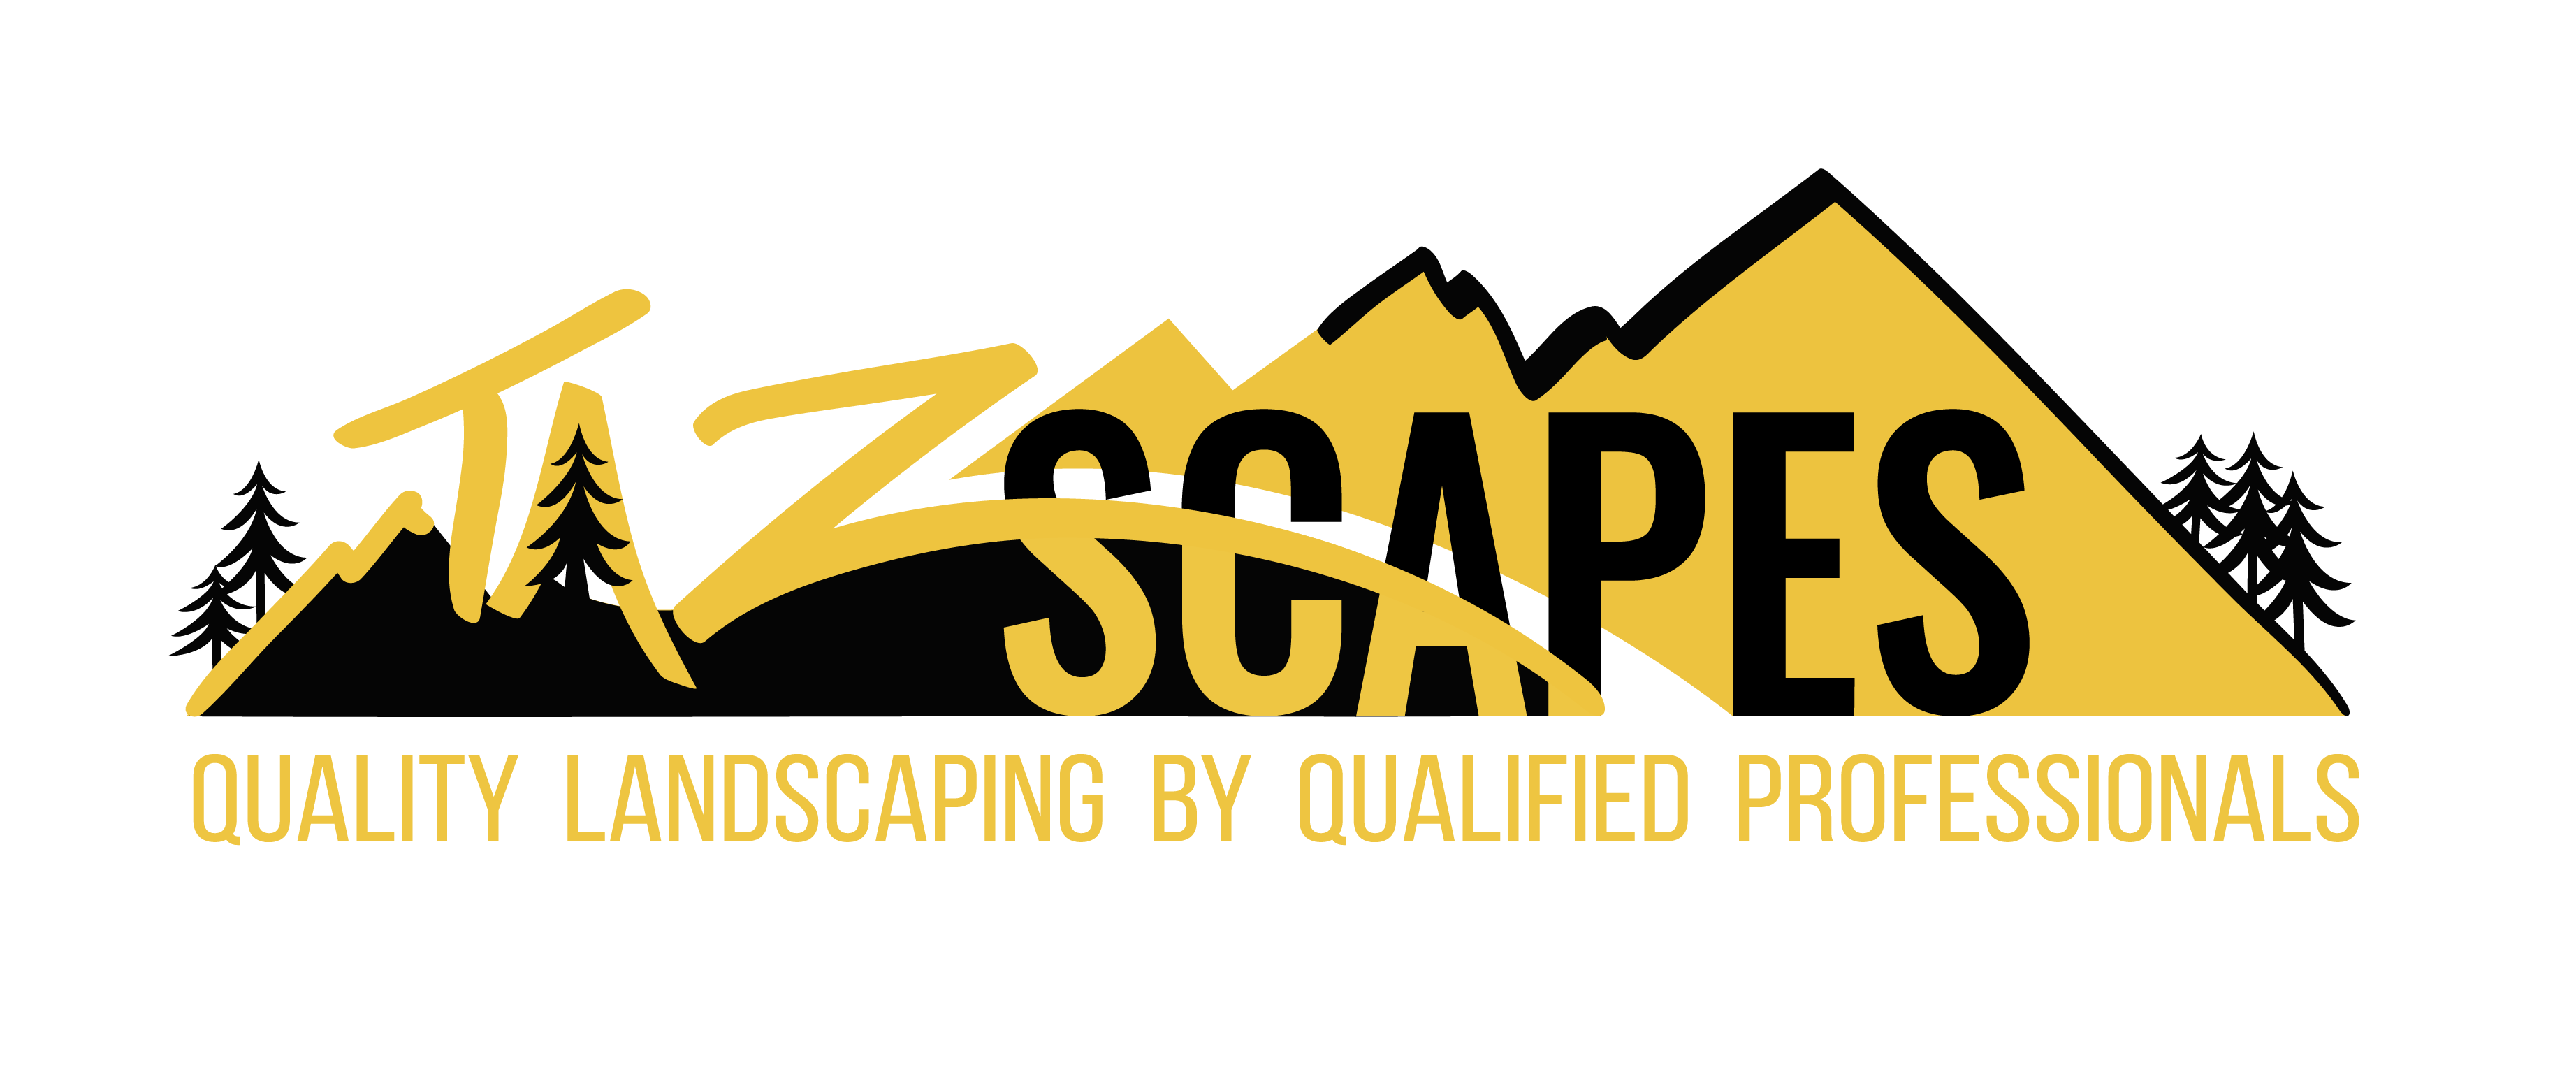 Tazscapes Logo